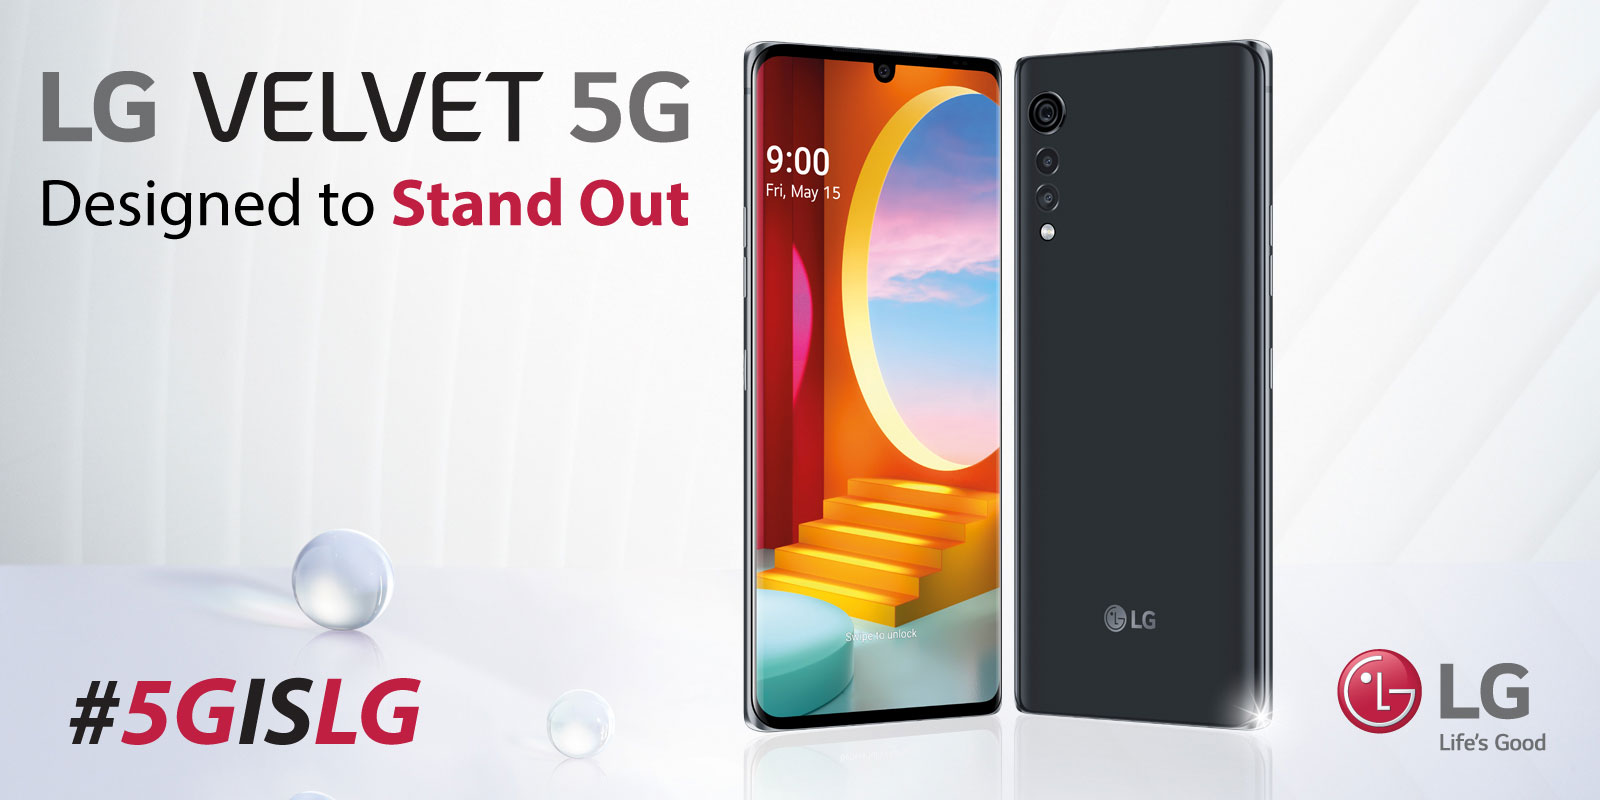 LG Velvet 5G Designed to Stand Out